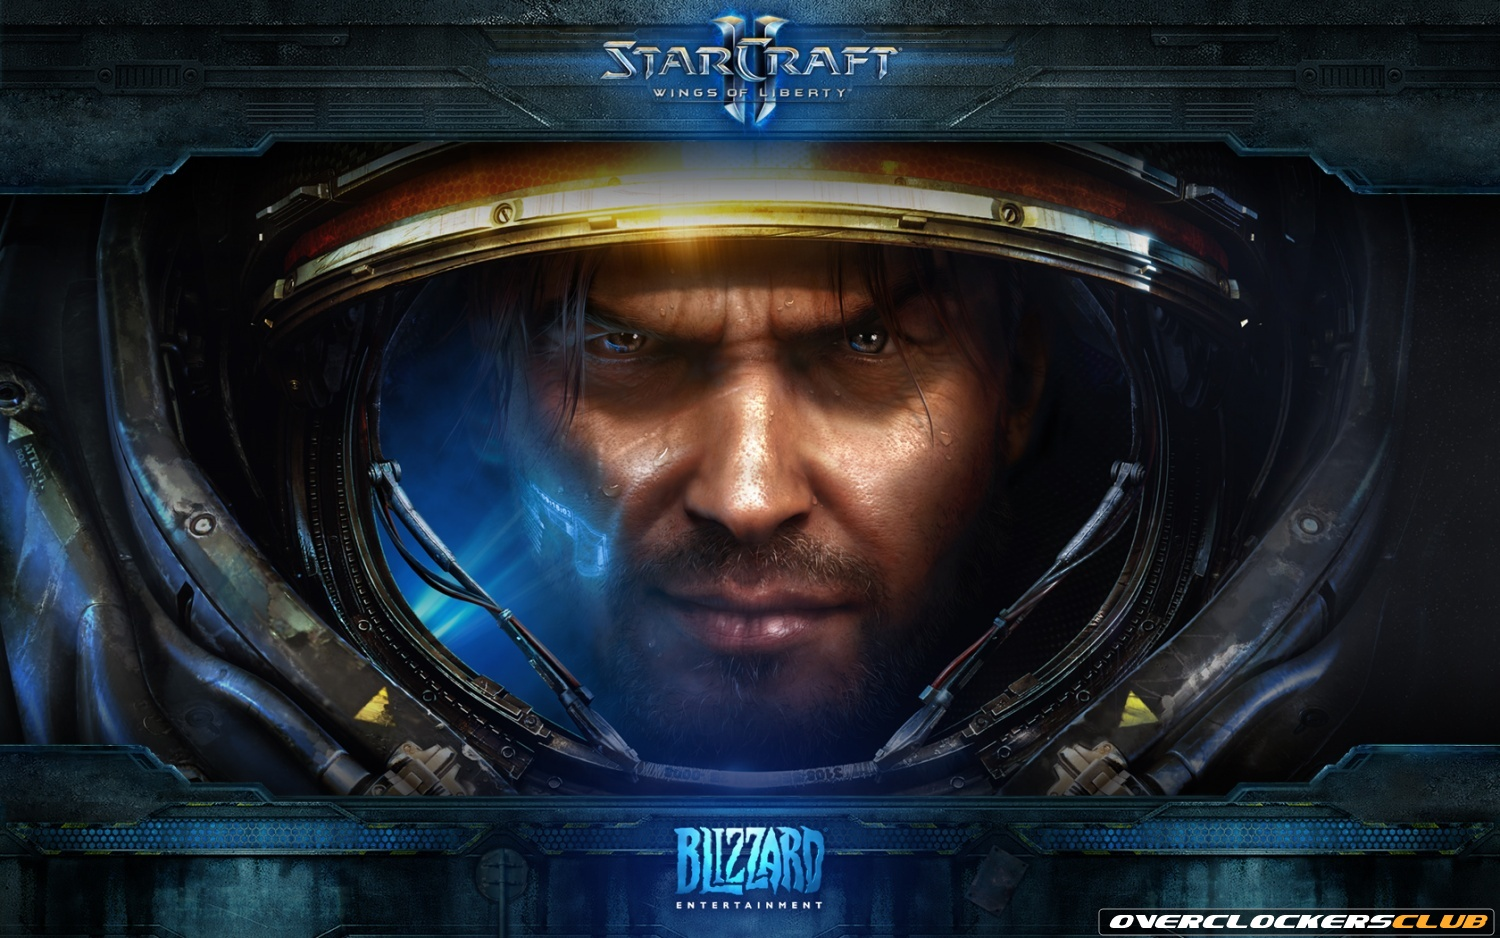 Catch Up on the StarCraft Story